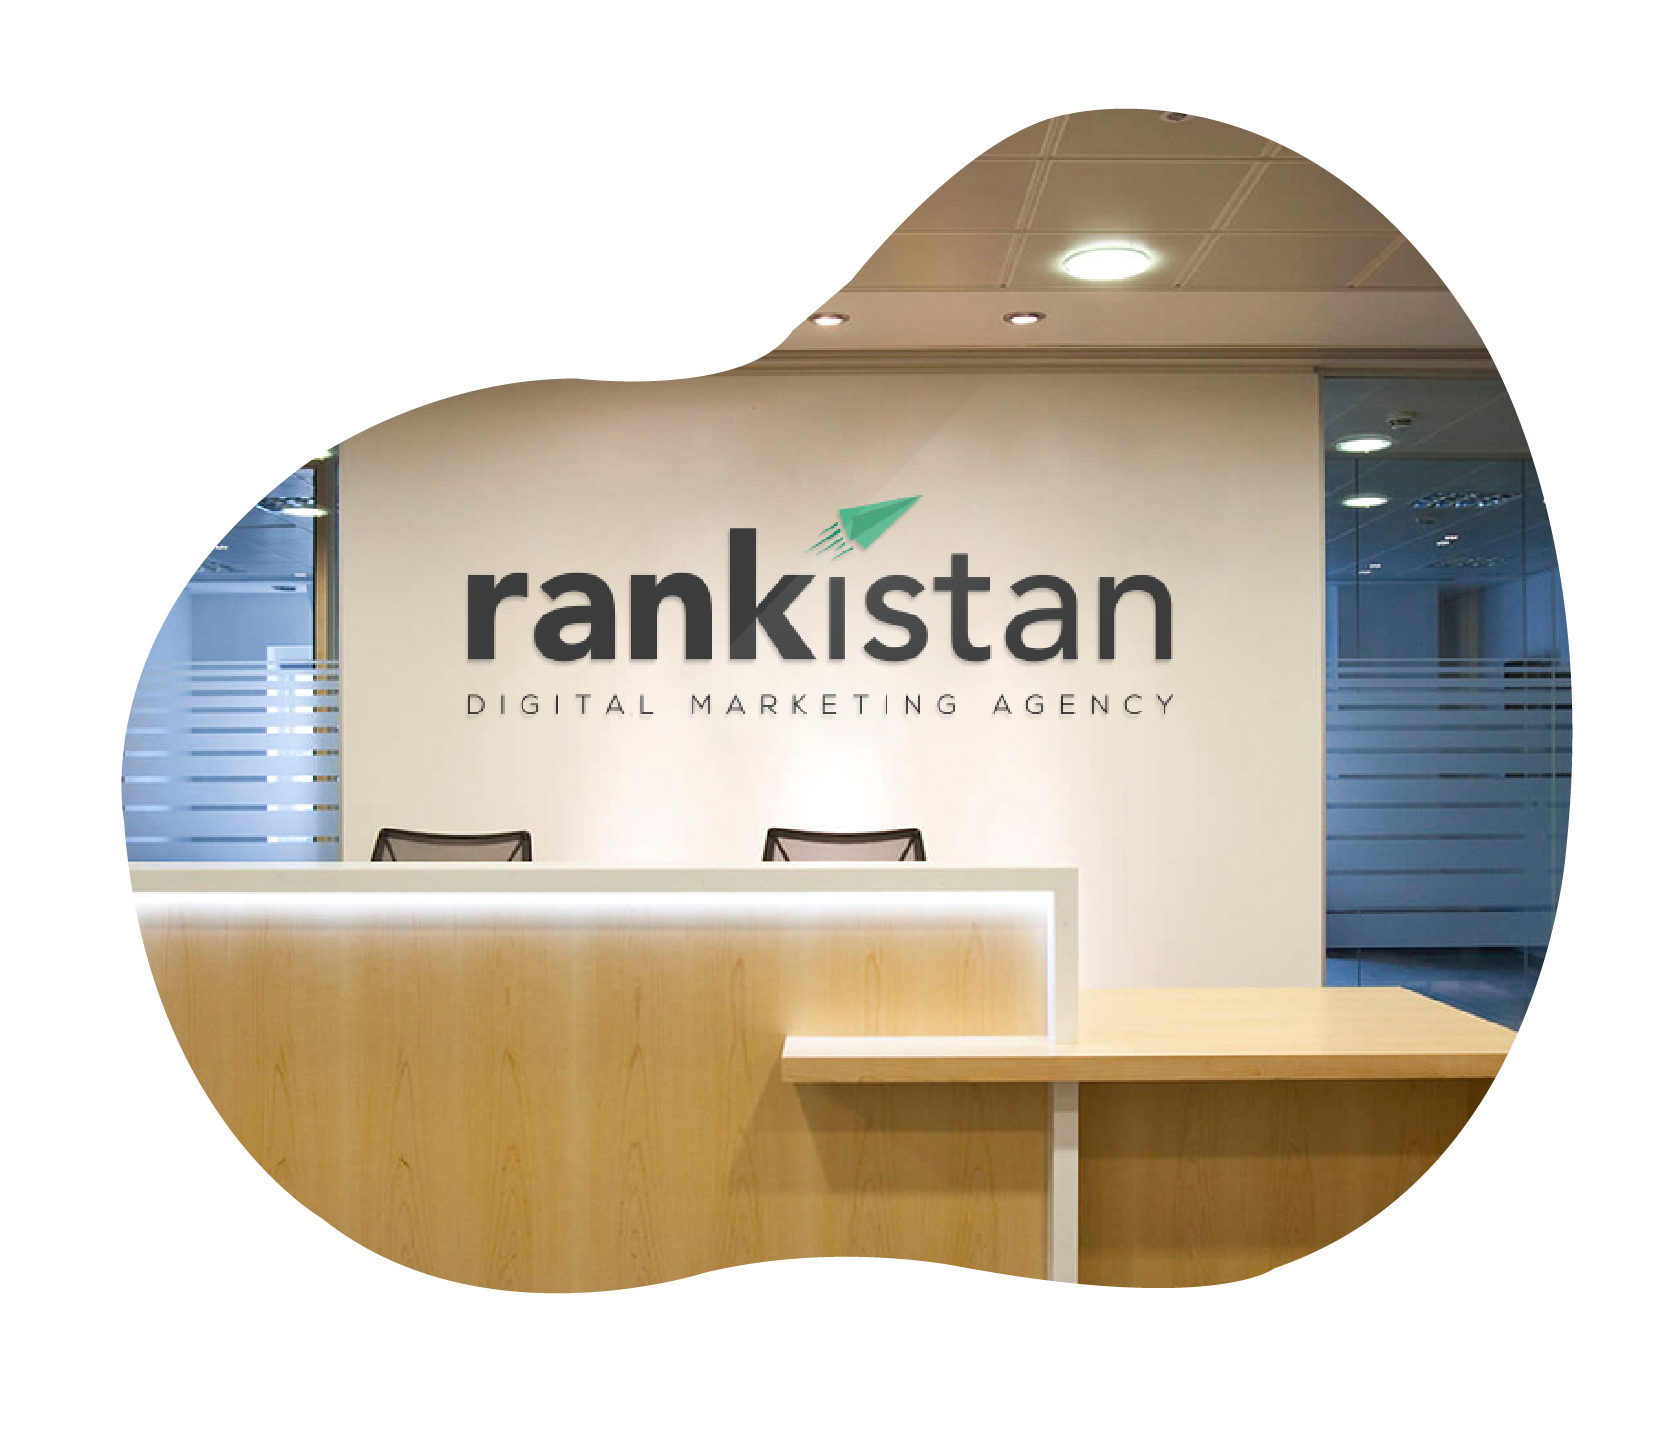 rankistan digital marketing agency